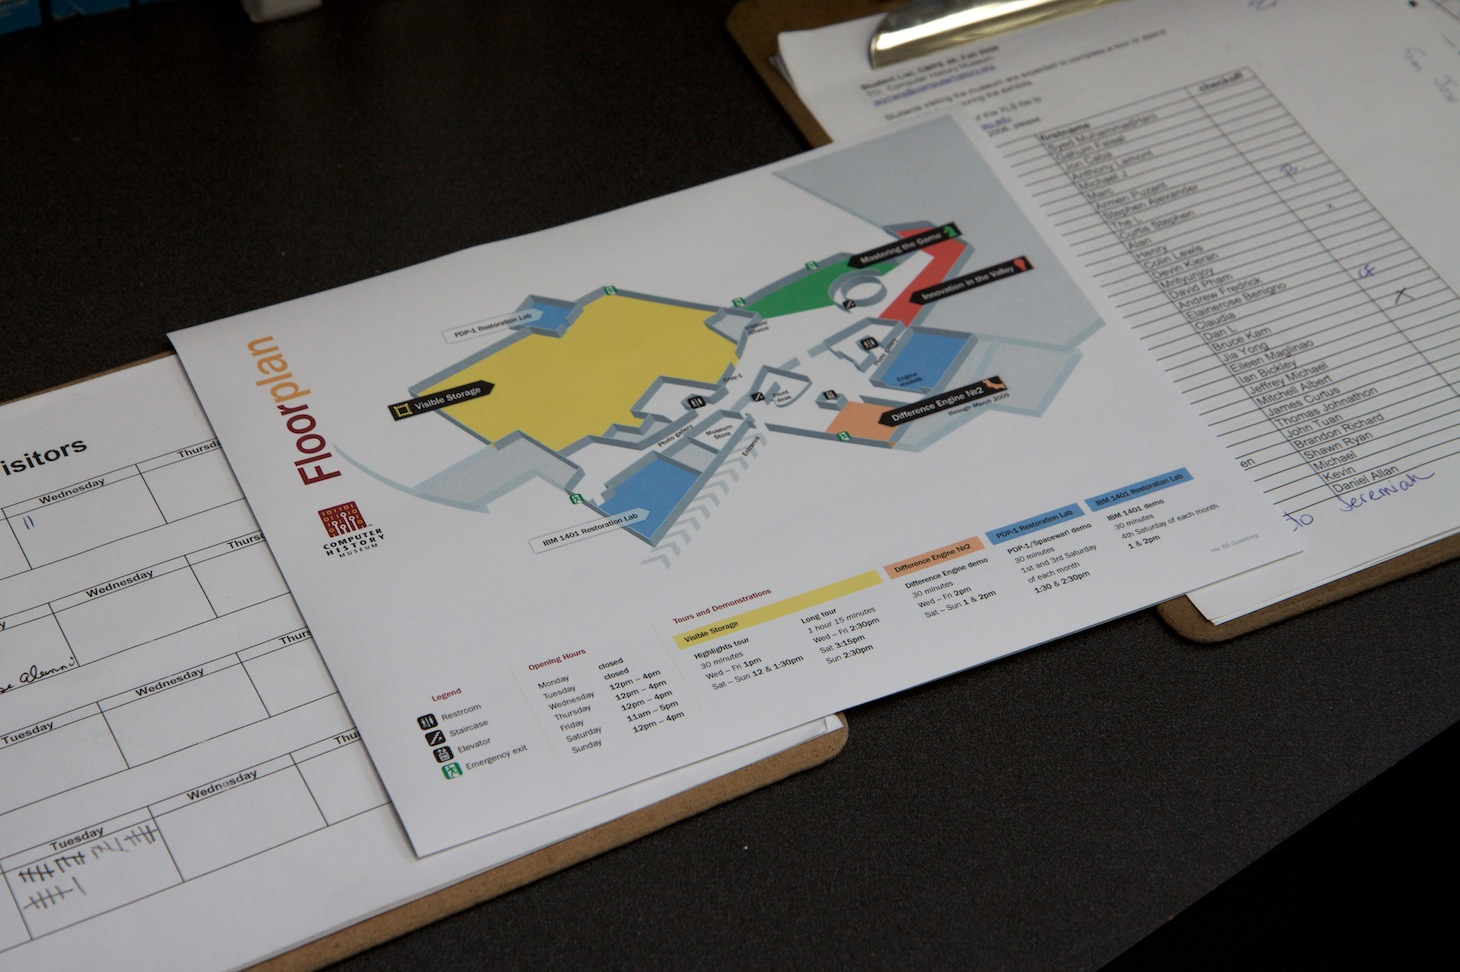 Floorplanner acquires 3d room planner tool mydeco3d for My deco 3d planner